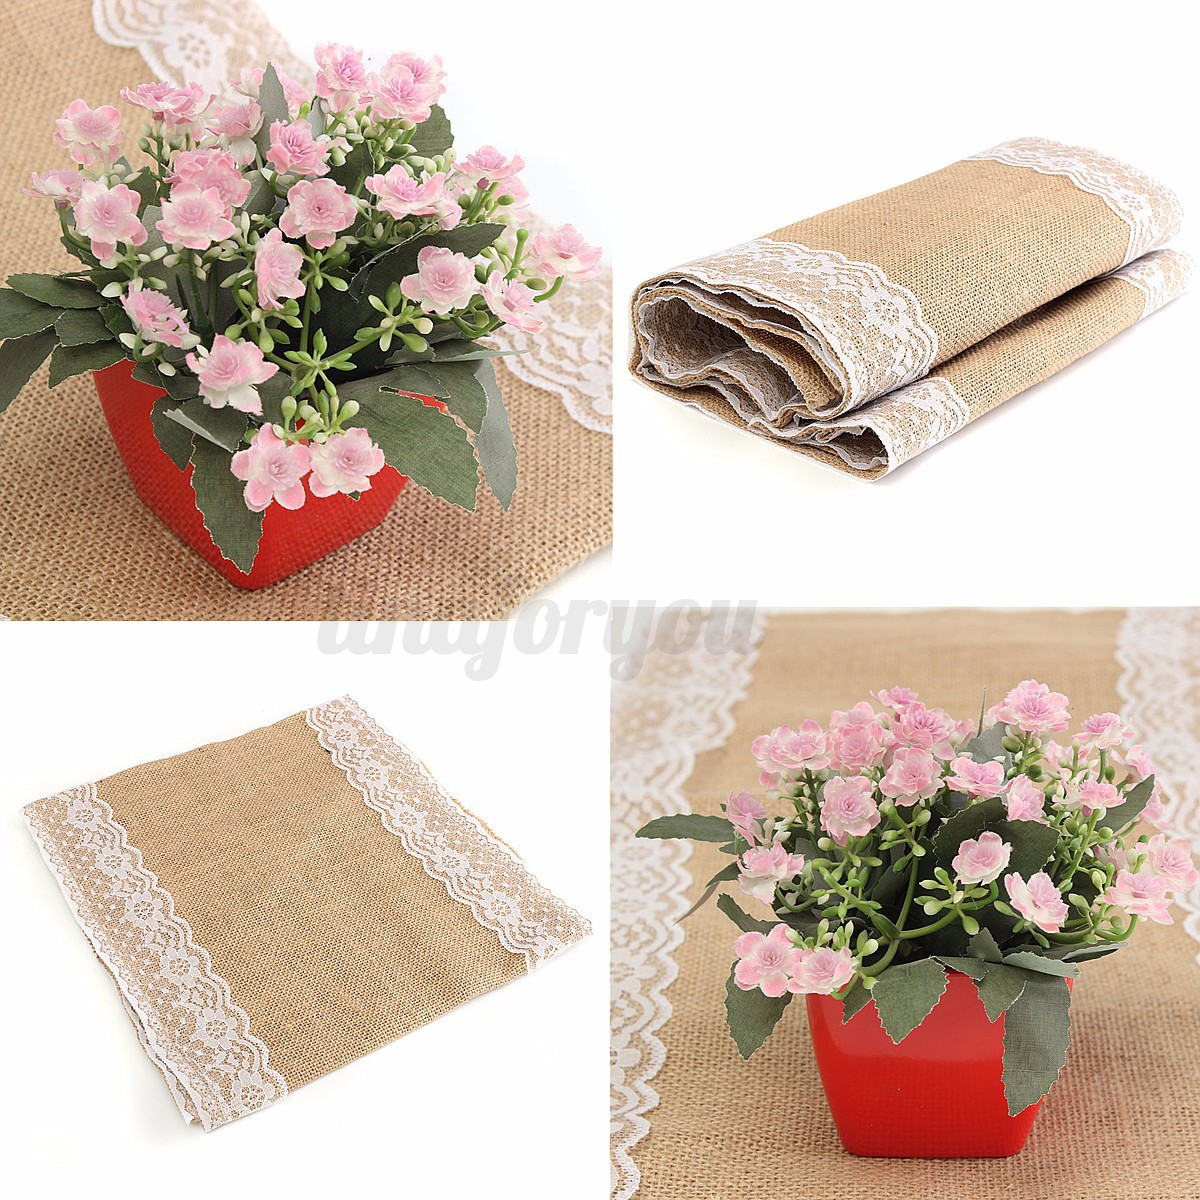 nappe tissu toile de jute dentelle chemin de table no l f te mariage d coration ebay. Black Bedroom Furniture Sets. Home Design Ideas